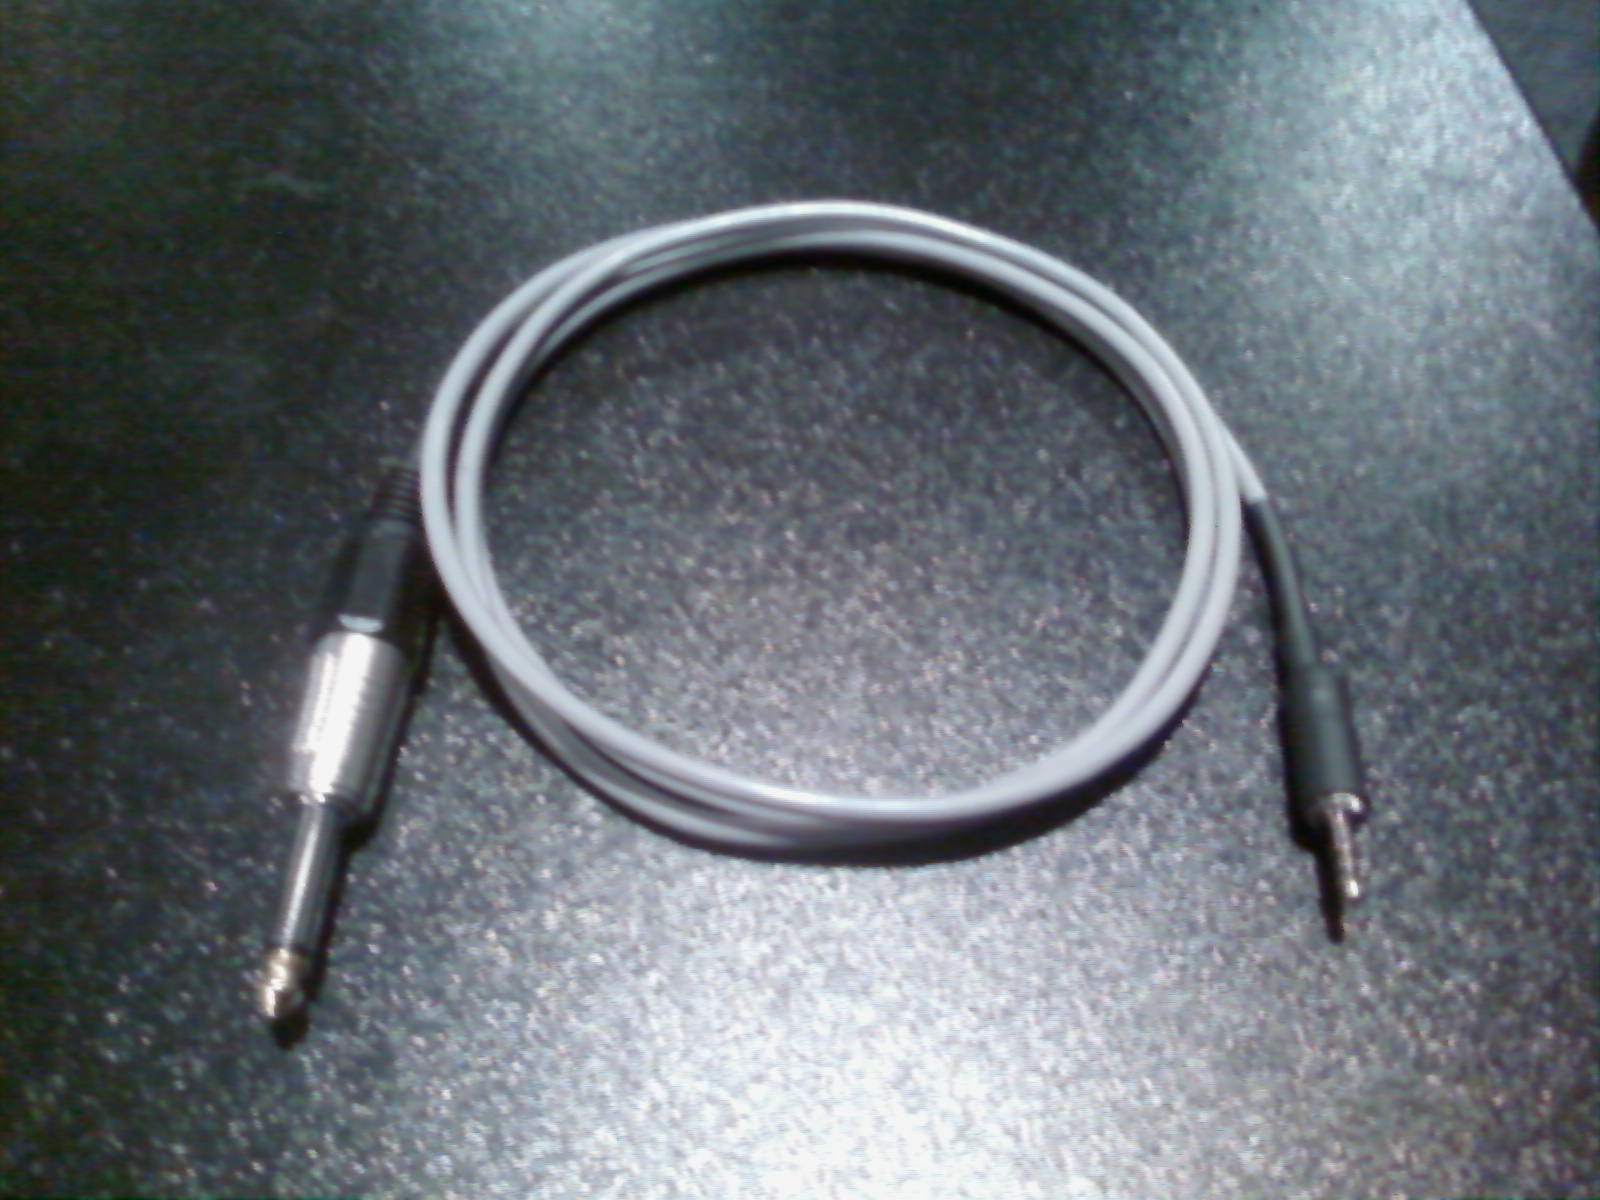 The Stereo To Mono Summing Cable That No One Makes Late Wiring Diagram Further For Xlr 1 4 Jack Its Constructed Of 6 Six Feet Low Profile Balanced Shielded Microphone On End Is A 8 35mm Trs Plug Connecting